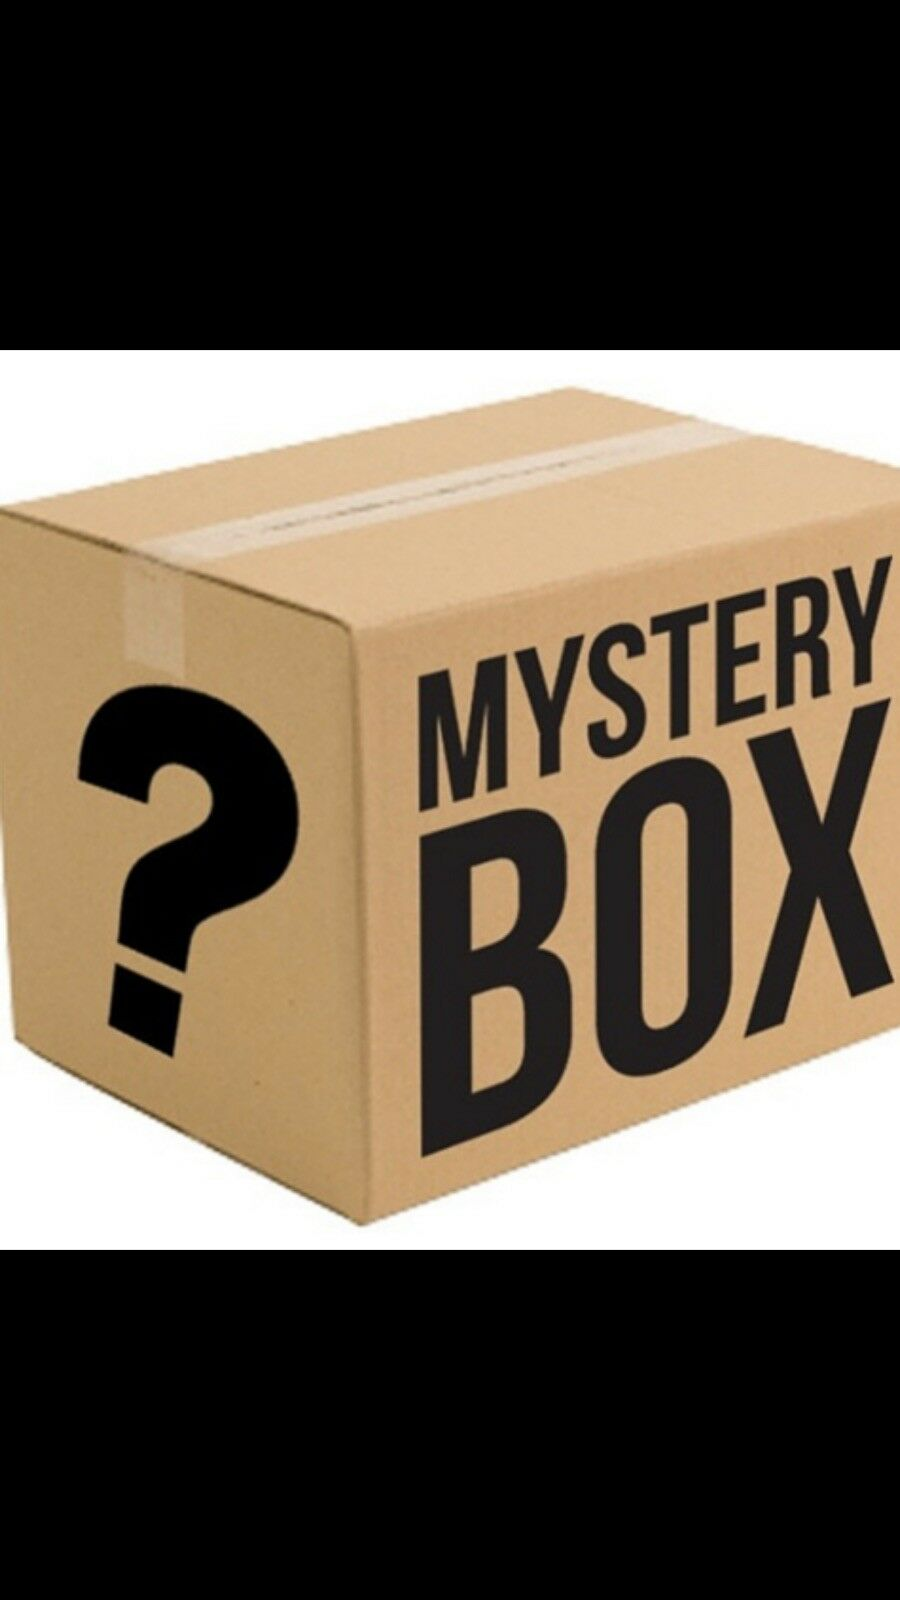 Mystery Amazing hidden items great for a gift or for your treasure.